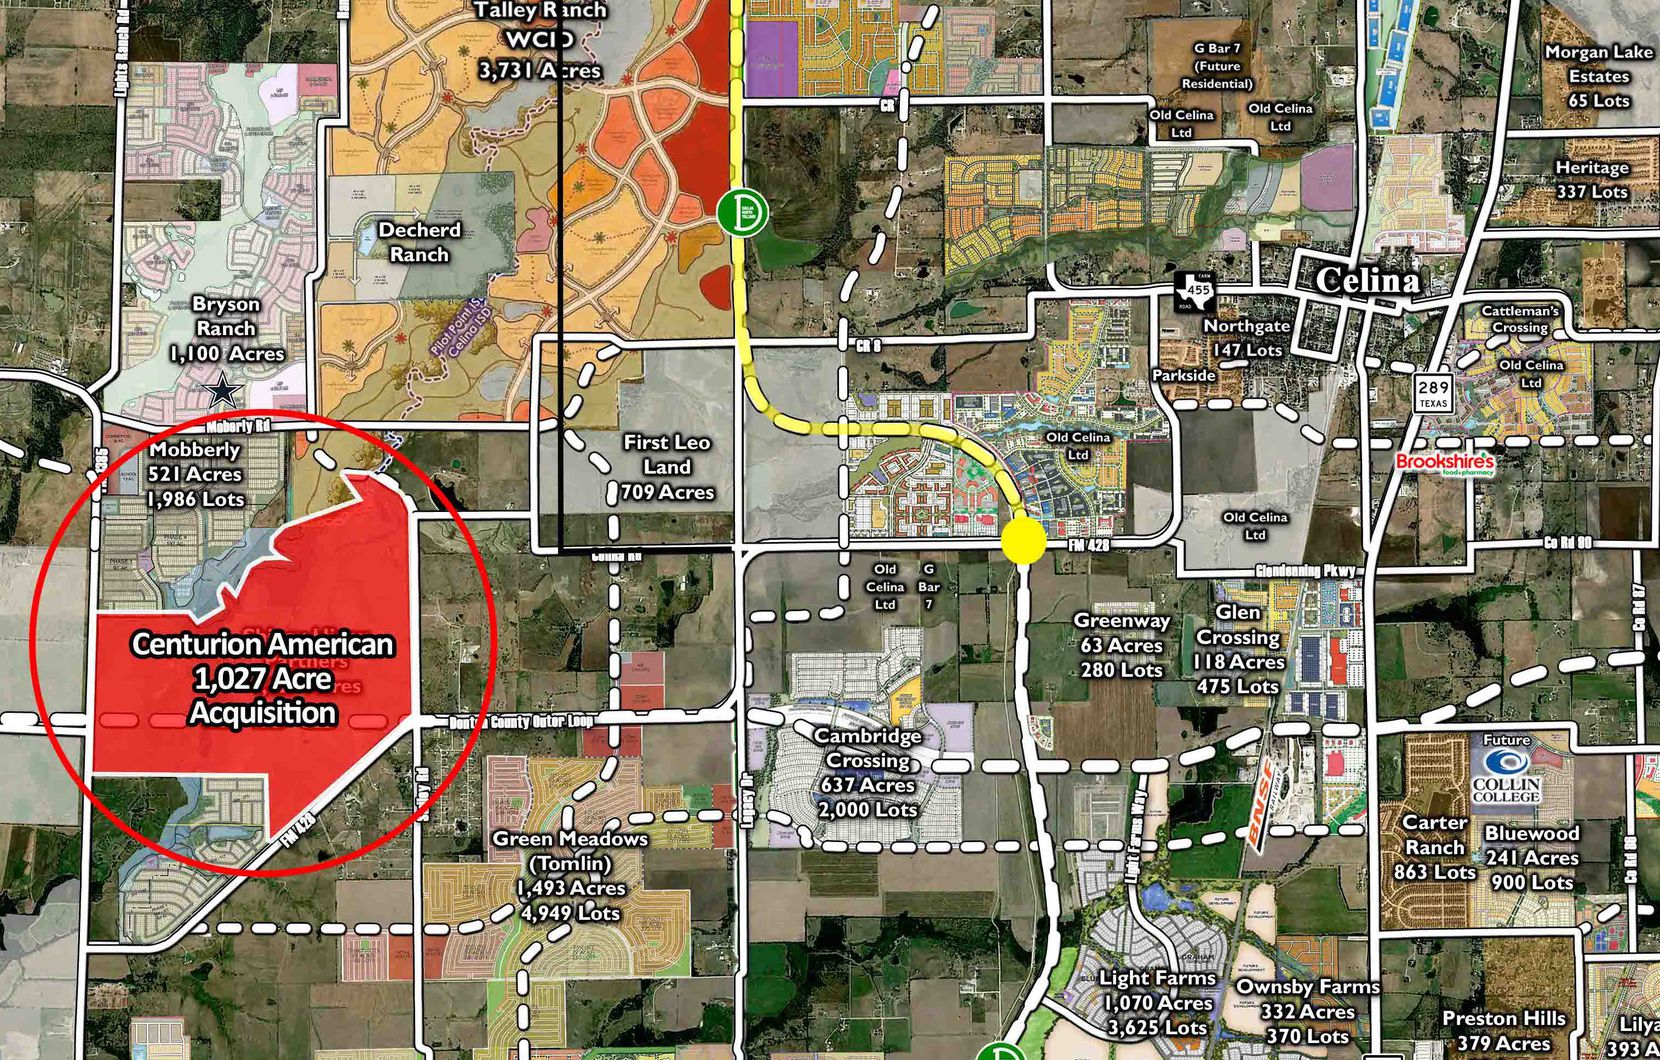 The just-acquired land is west of Celina.